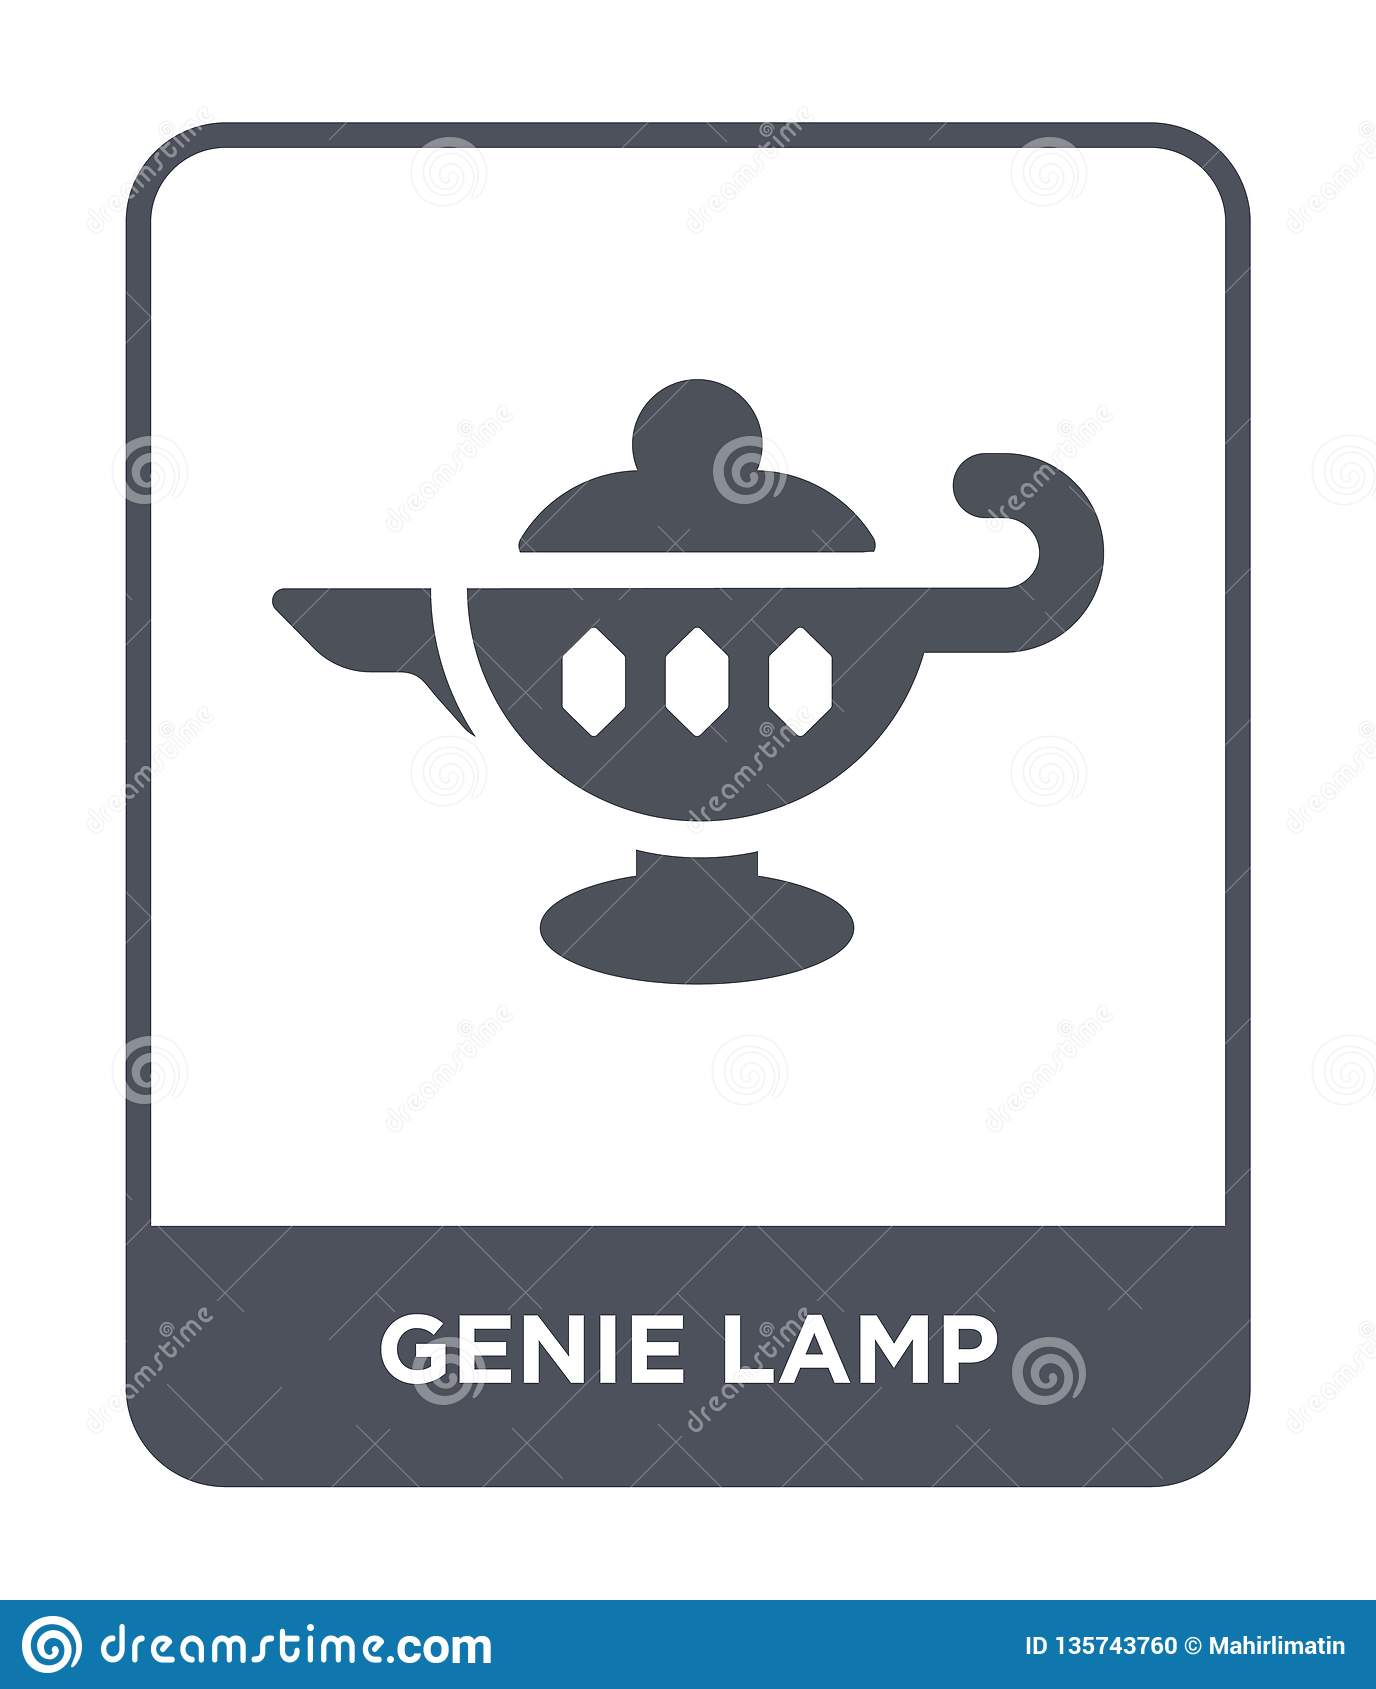 genie lamp icon in trendy design style. genie lamp icon isolated on white background. genie lamp vector icon simple and modern